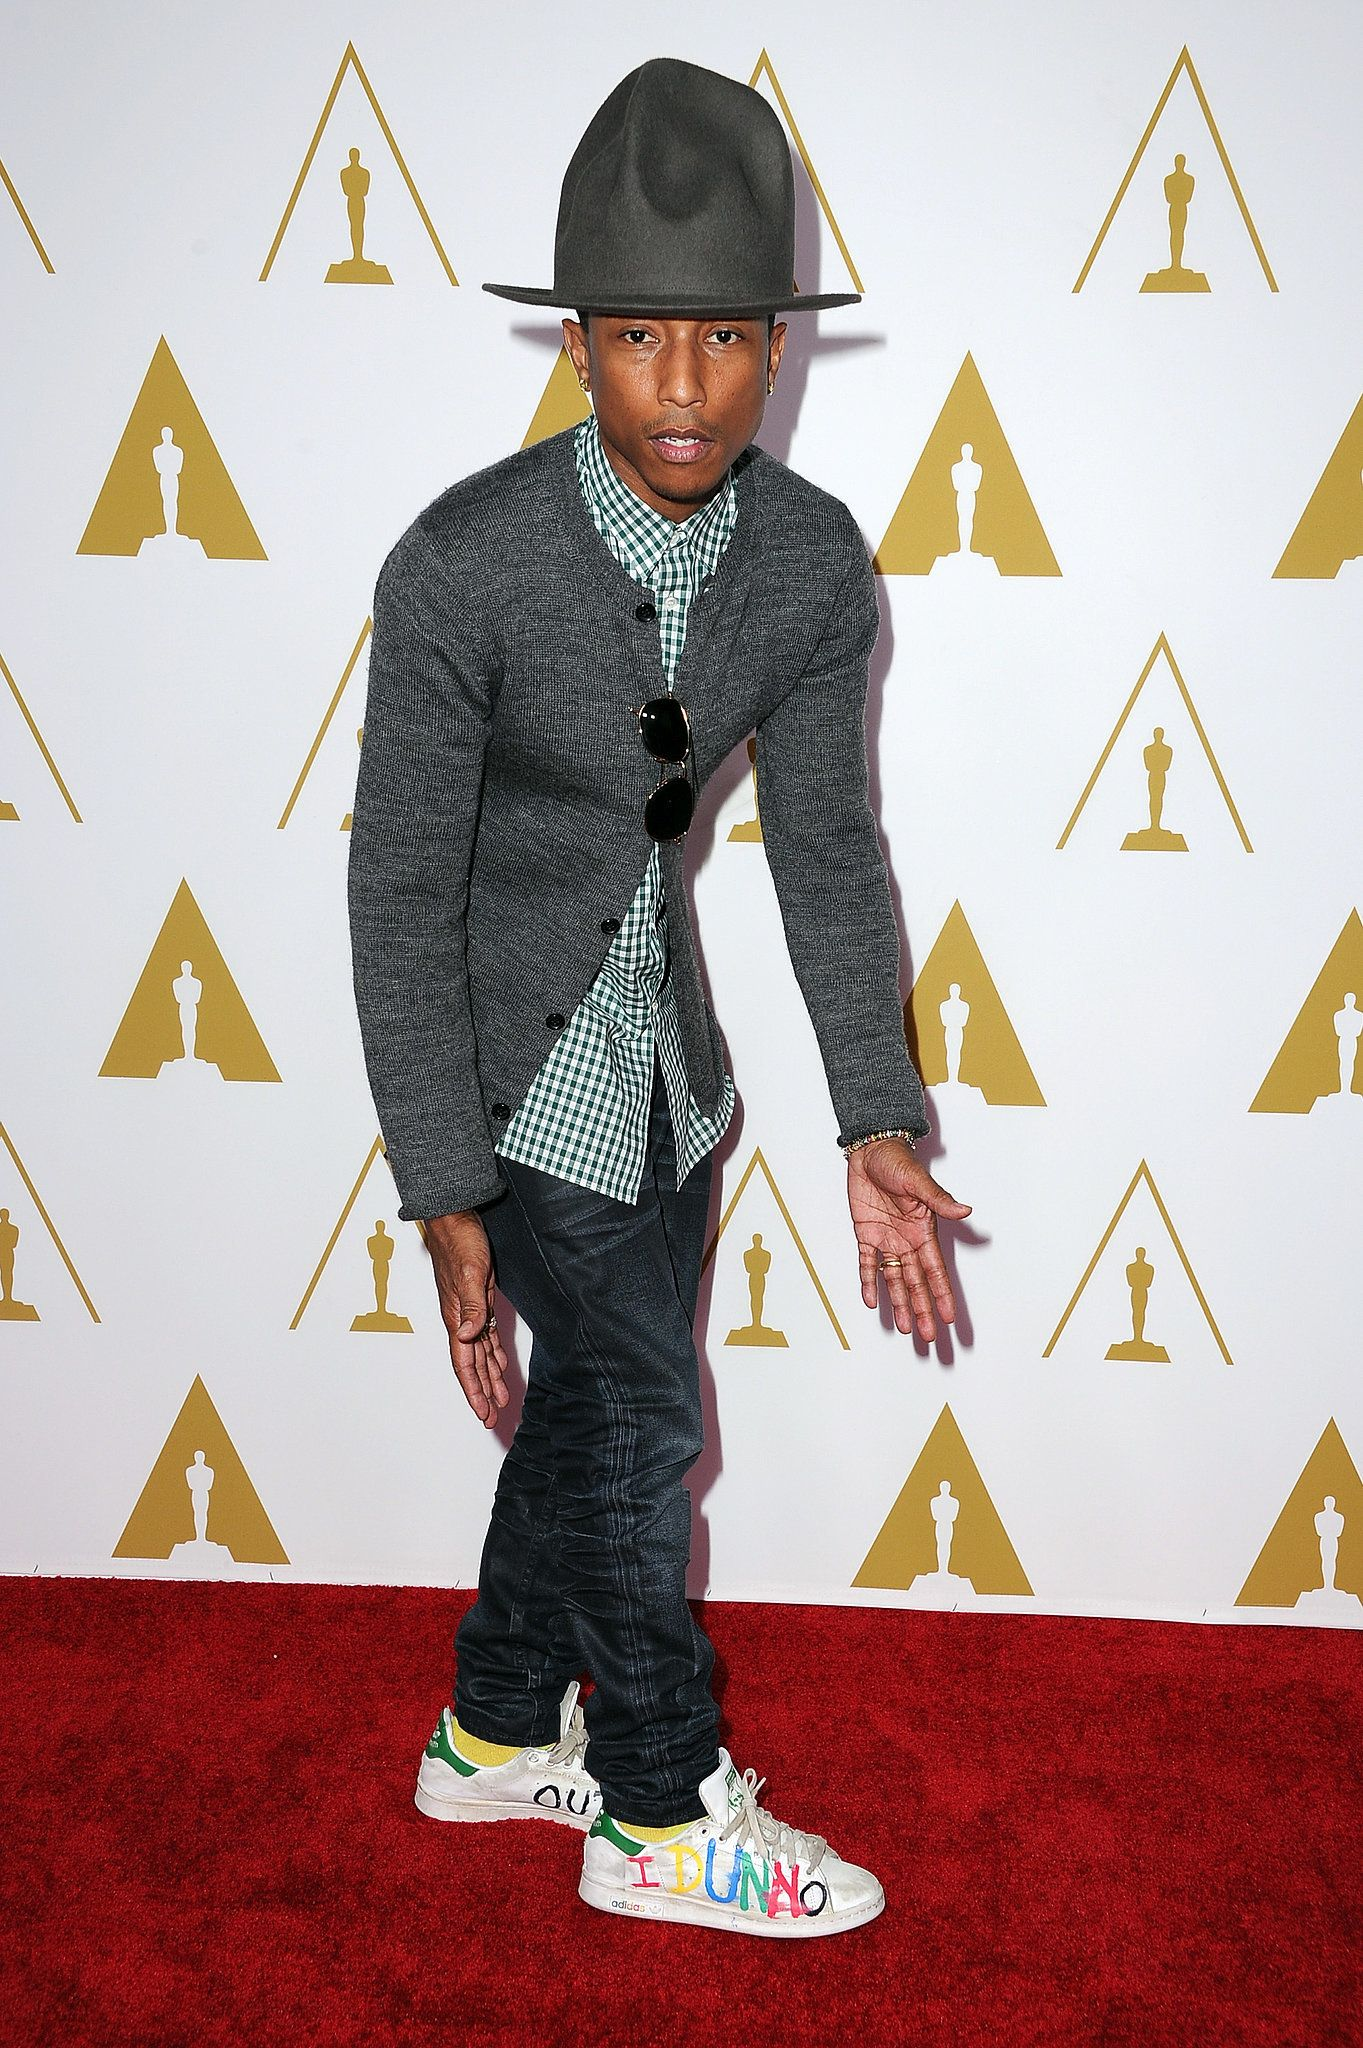 67e01611f1516 Pharrell and his hat walked the red carpet at the 2014 Oscars nominees  luncheon.